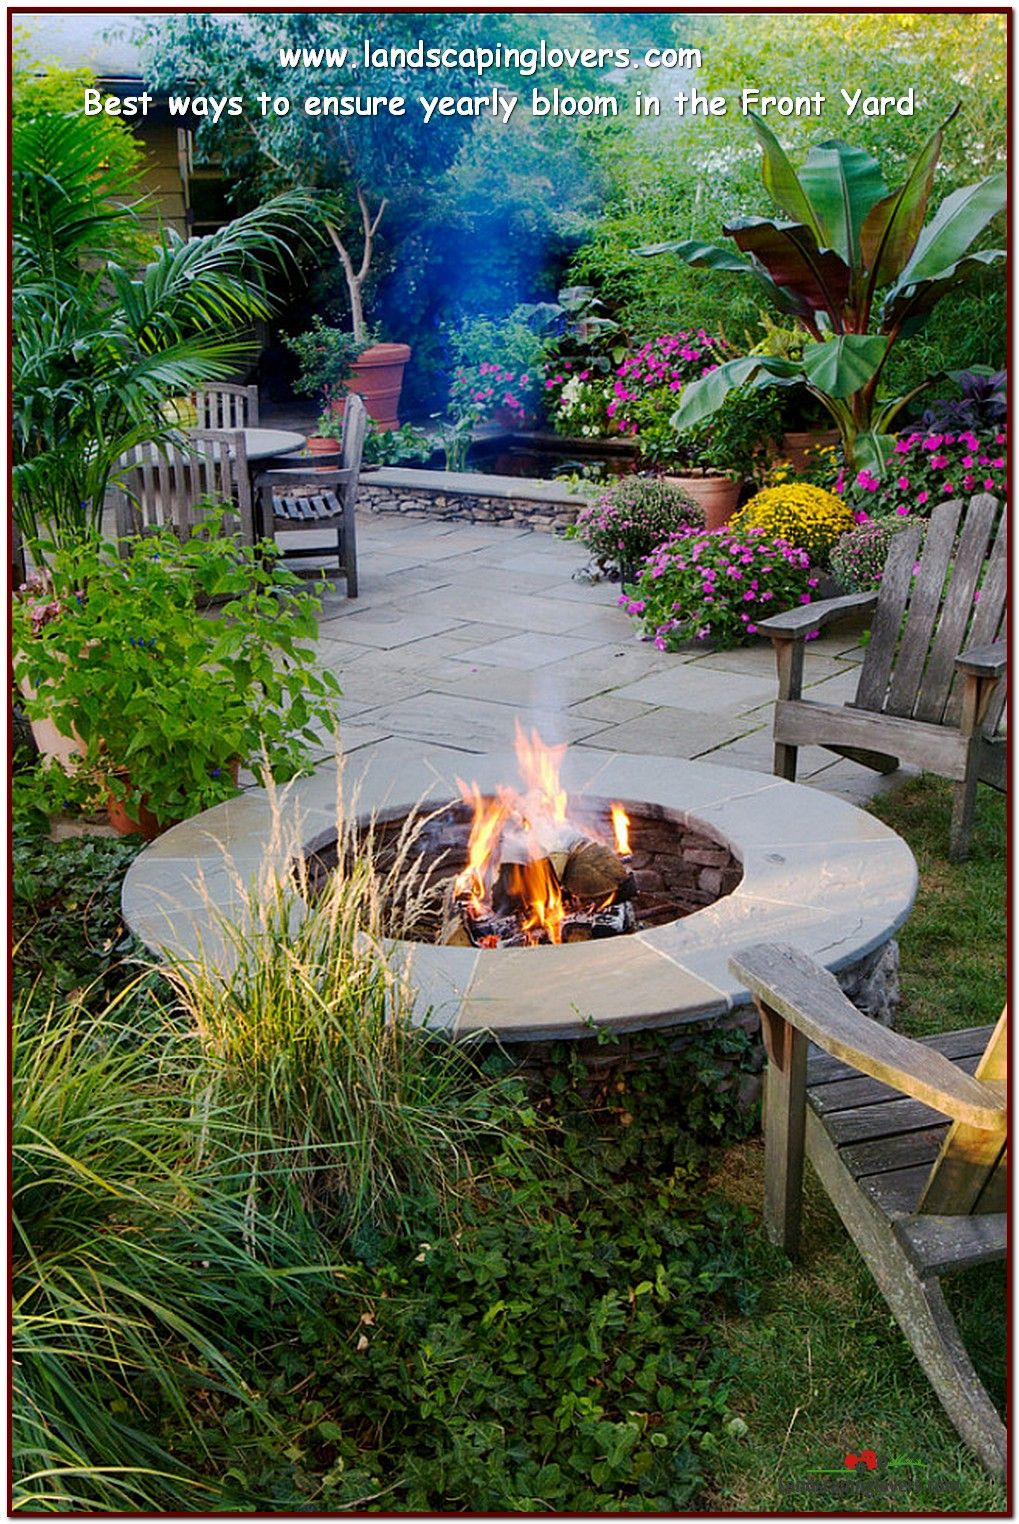 How To Keep Your Yard Looking Nice In The Winter ... on Tropical Landscaping Ideas For Small Yards id=65073